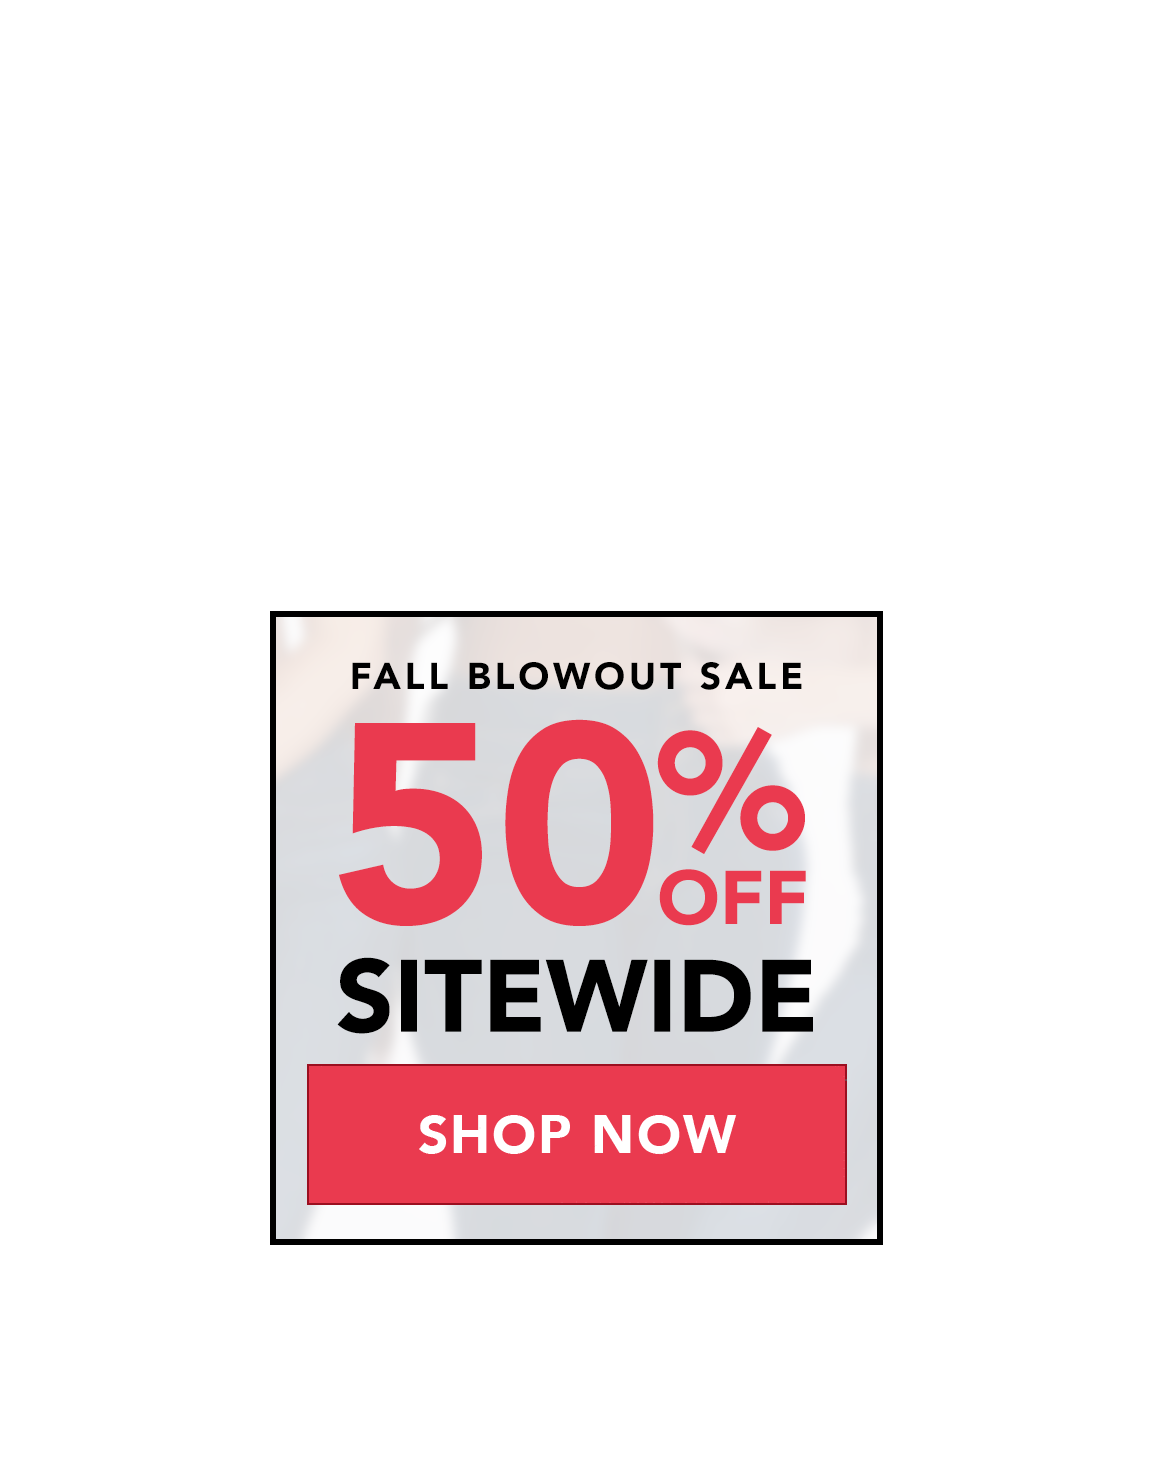 FALL BLOWOUT SALE - 50% OFF SITEWIDE - SHOP NOW